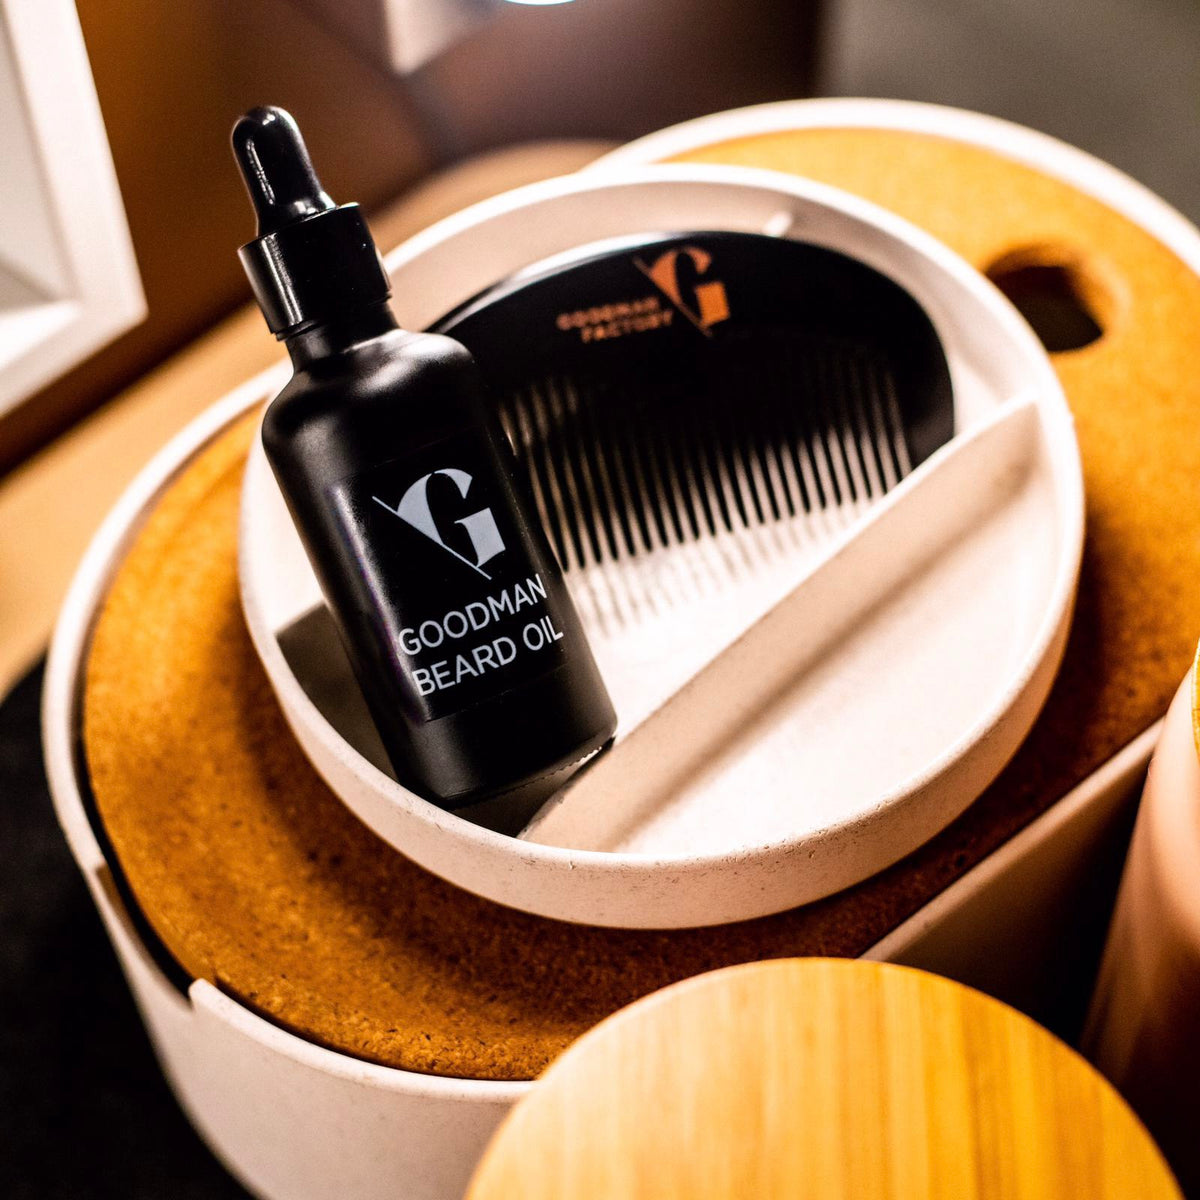 GOODMAN BEARD CARE COMB CAPSULE